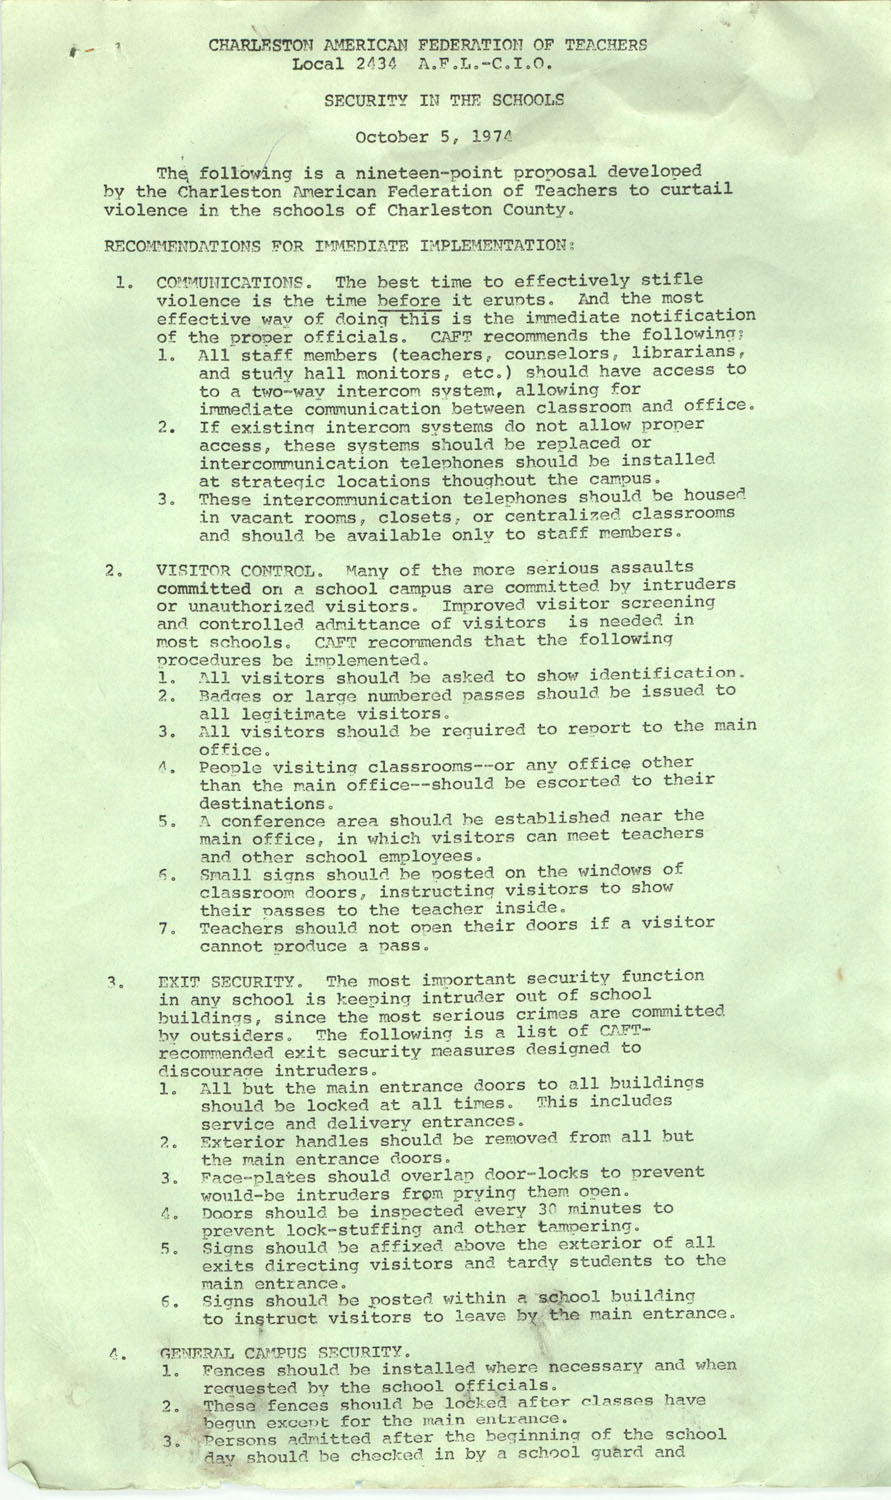 Charleston American Federation of Teachers, Security in the Schools Recommendations, October 5, 1974